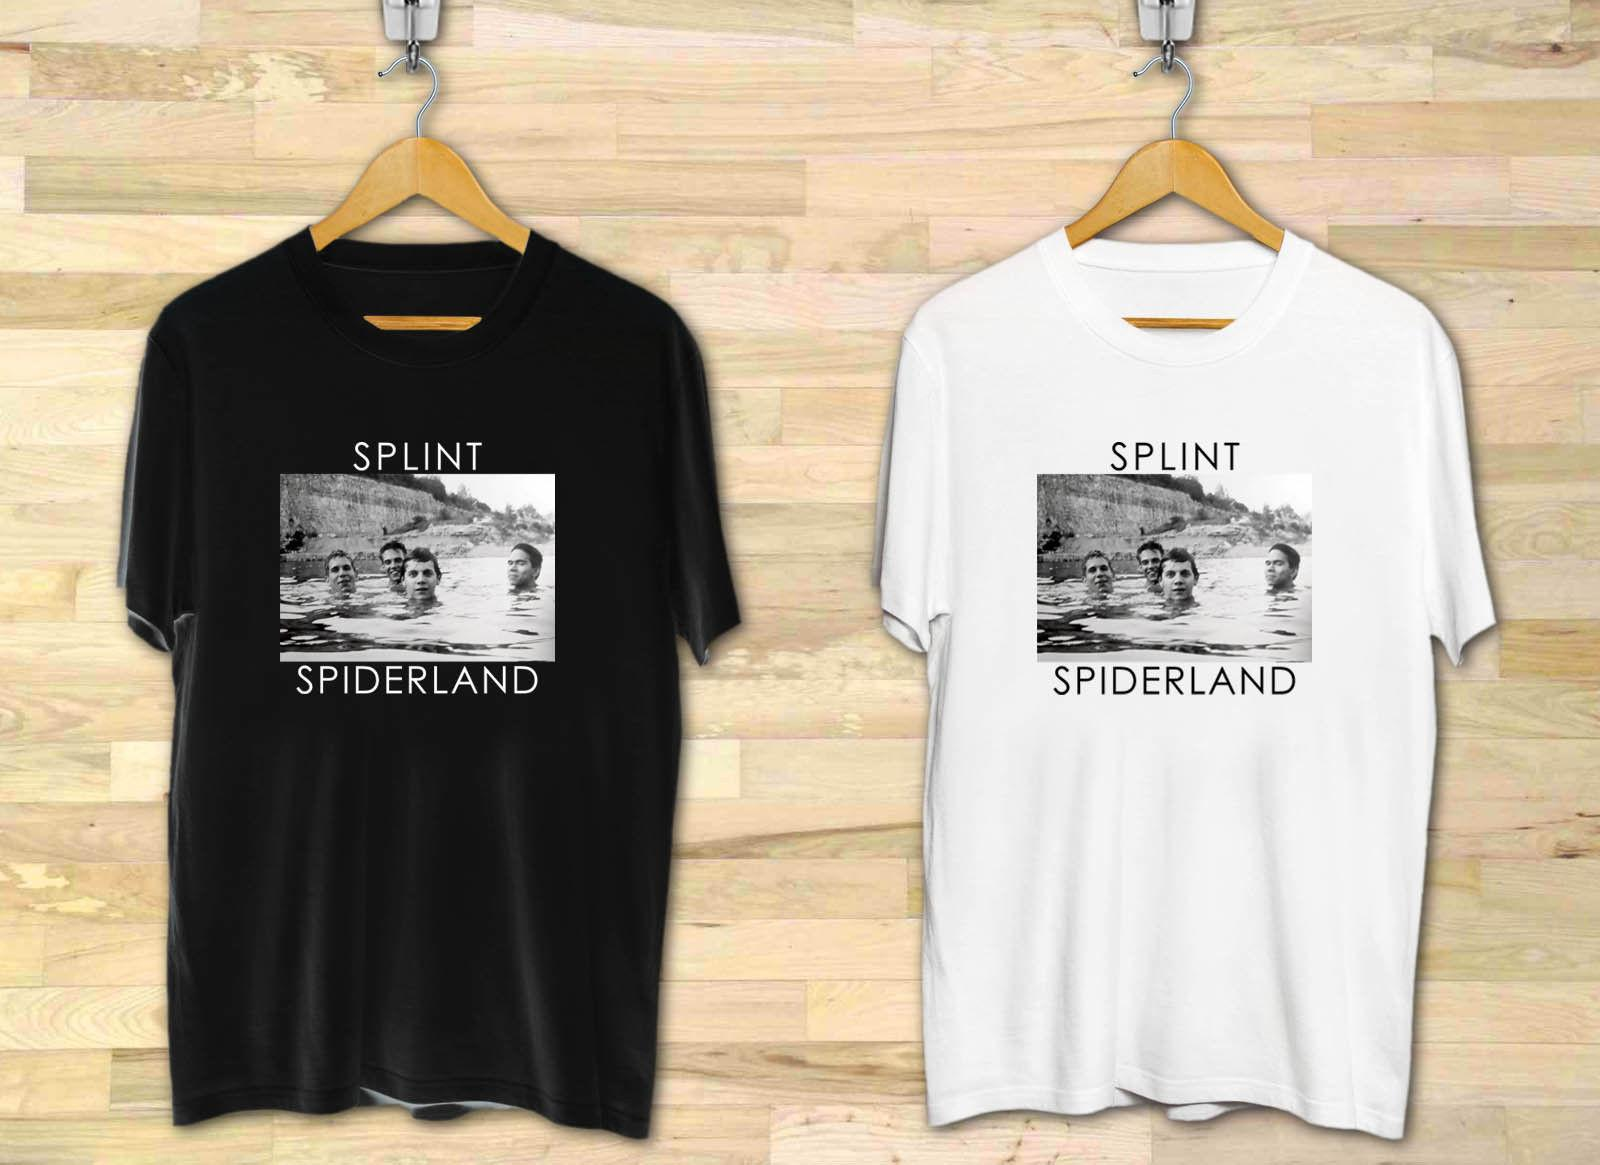 SLINT SPIDERLAND American Rock Band Men's Black White T-Shirt XS to 3XL Funny free shipping Unisex Casual top